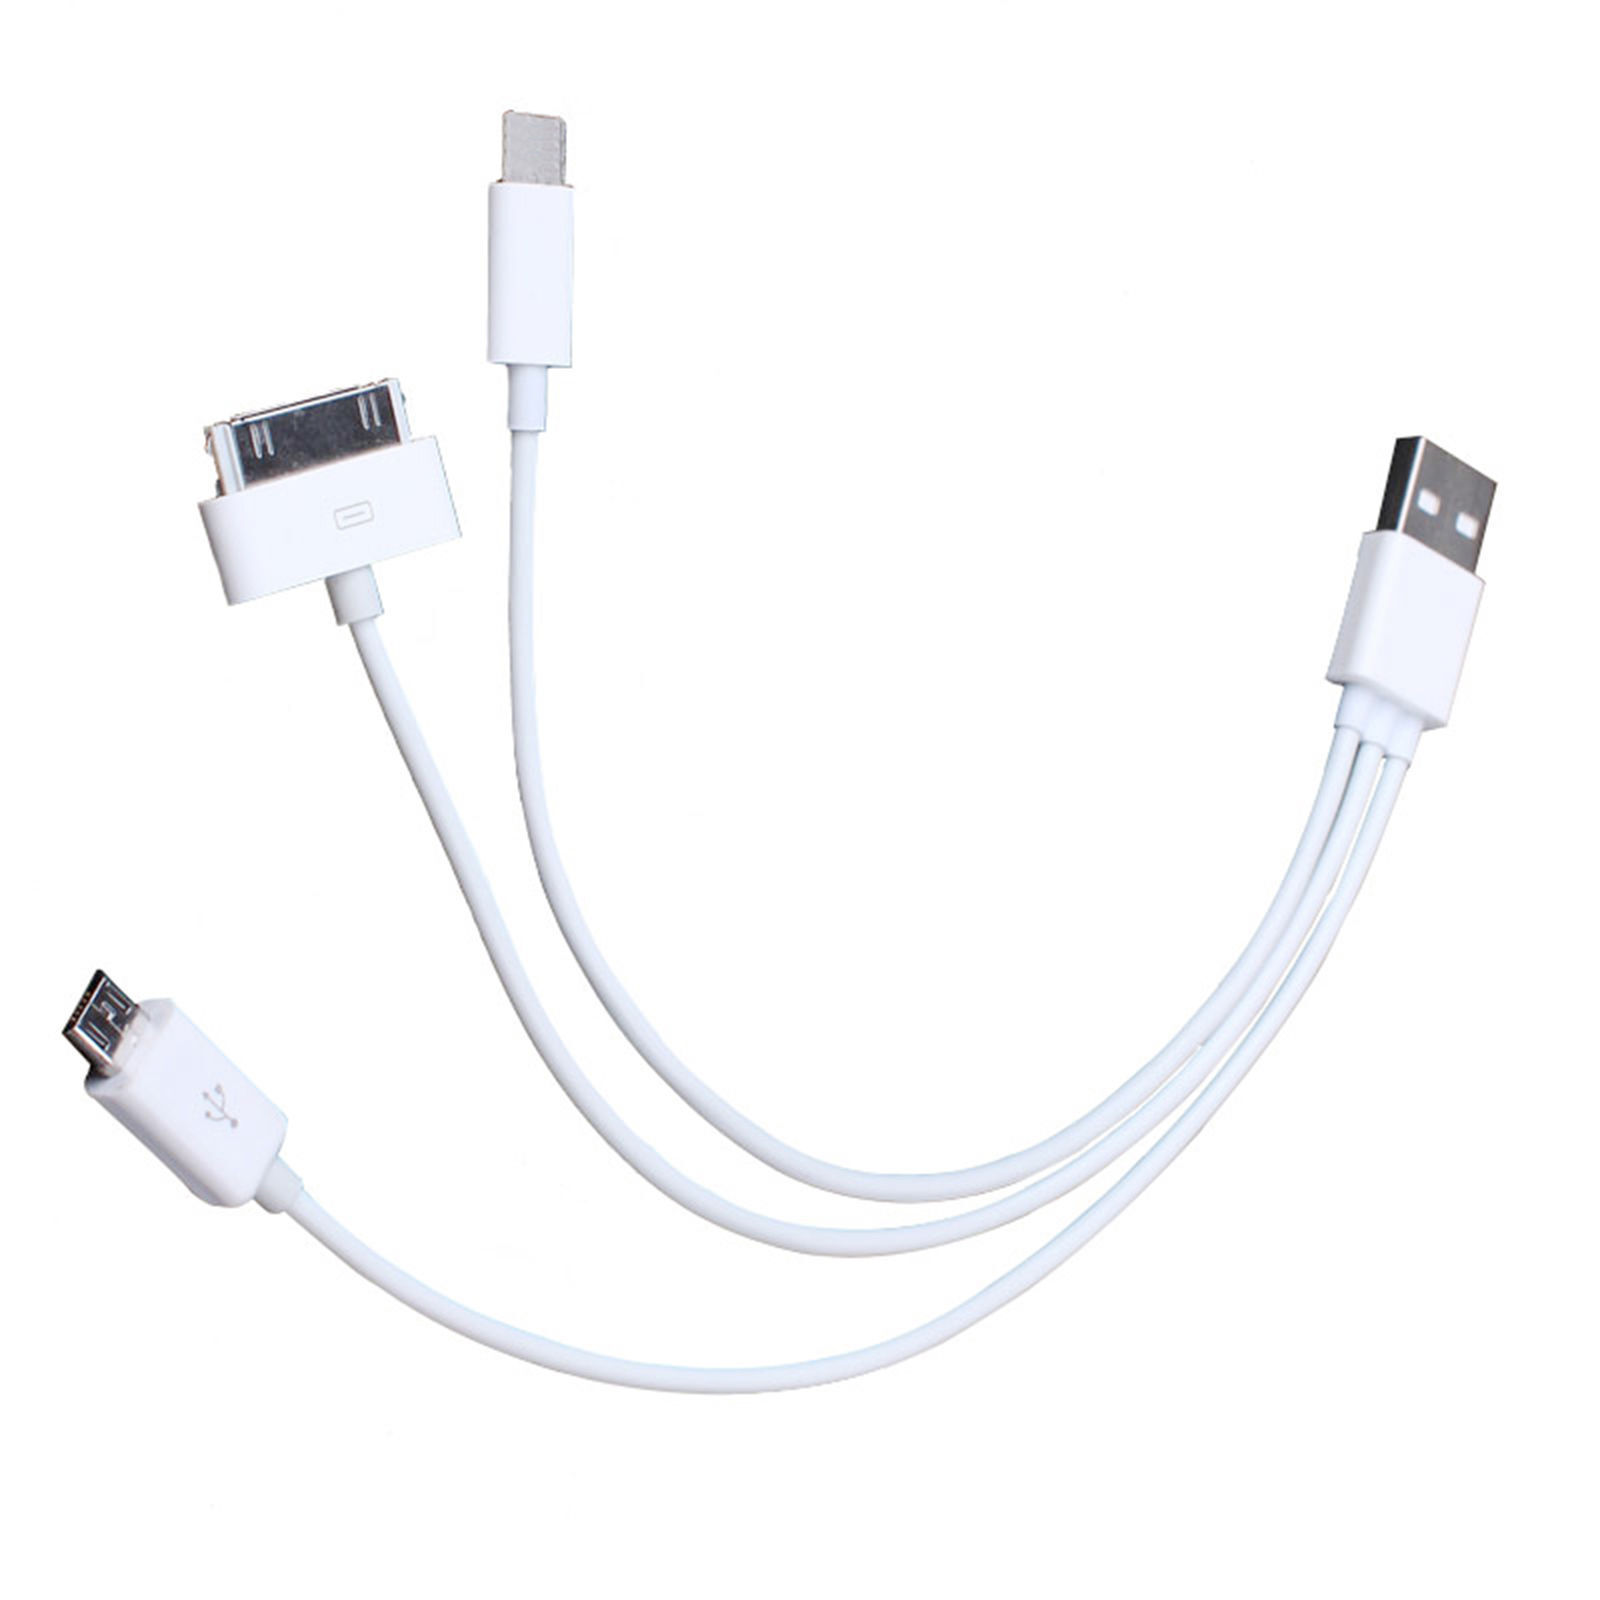 Multi Charging Cable Charger Lead For Iphone 4 4s 5 6 Ipod